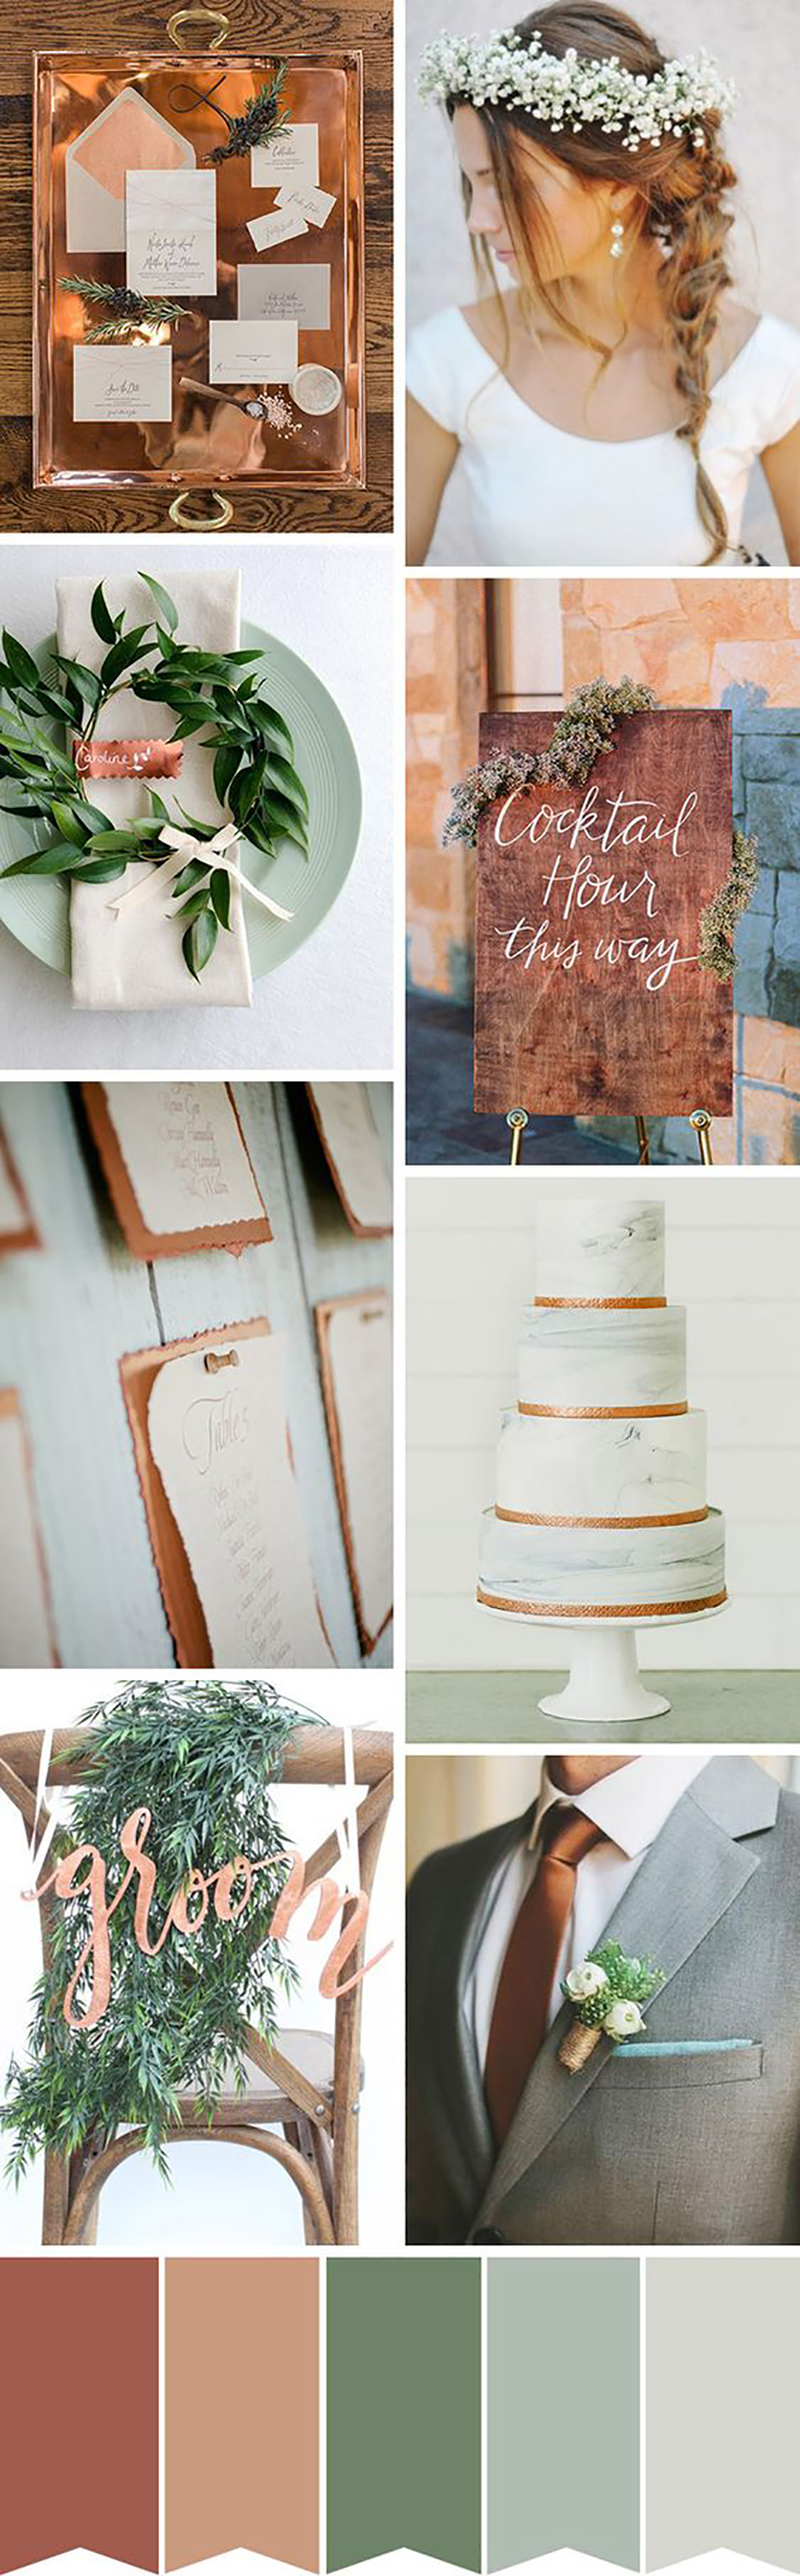 The Hottest Wedding Trends For 2017 - Colour schemes   CHWV